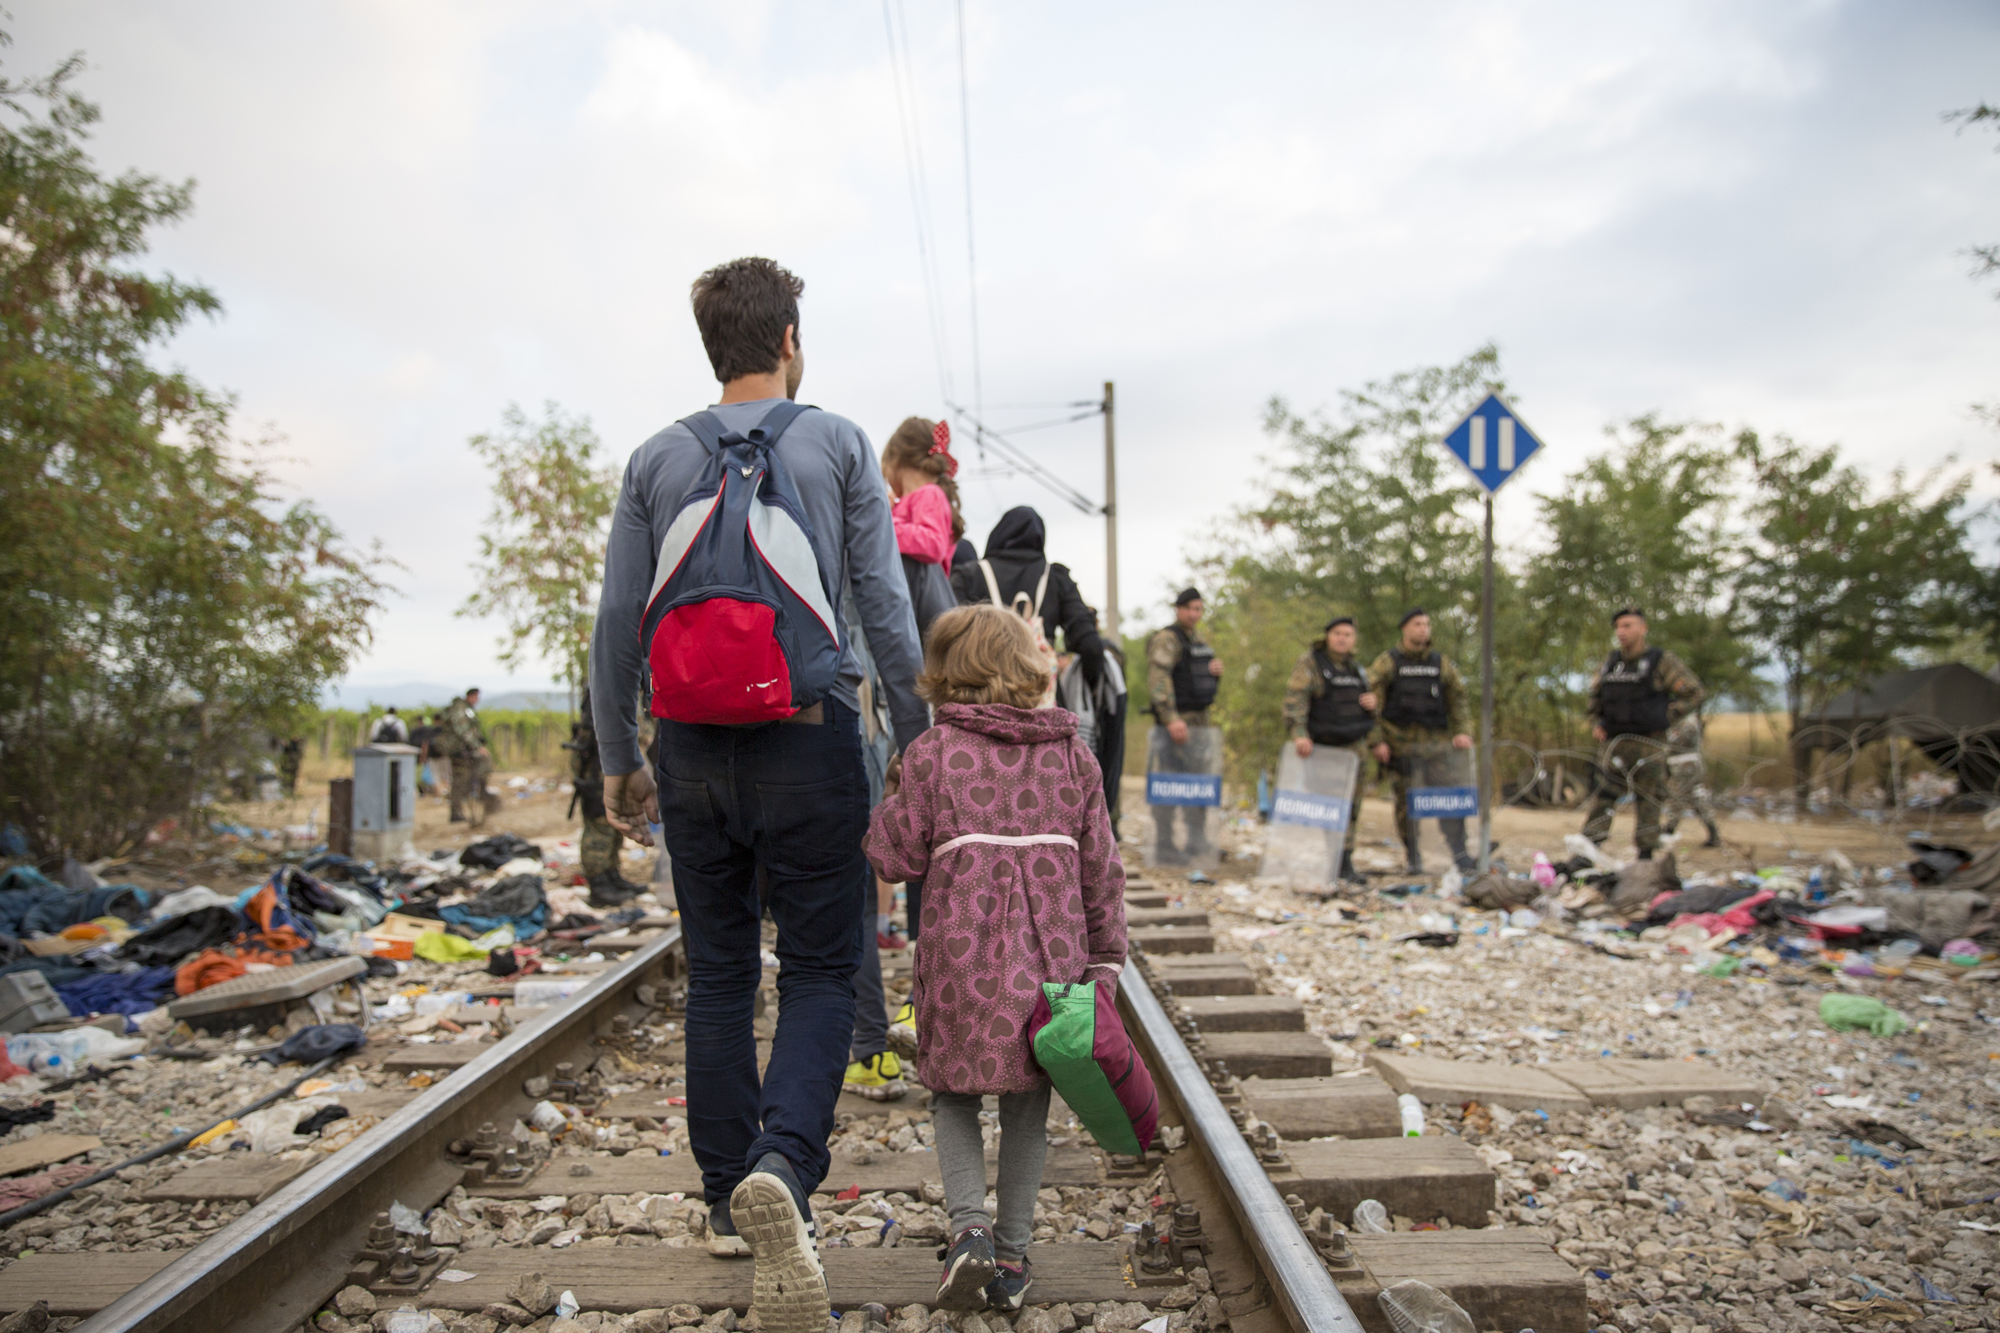 Refugees and migrants cross the border from Greece into Macedonia, 24 August 2015.